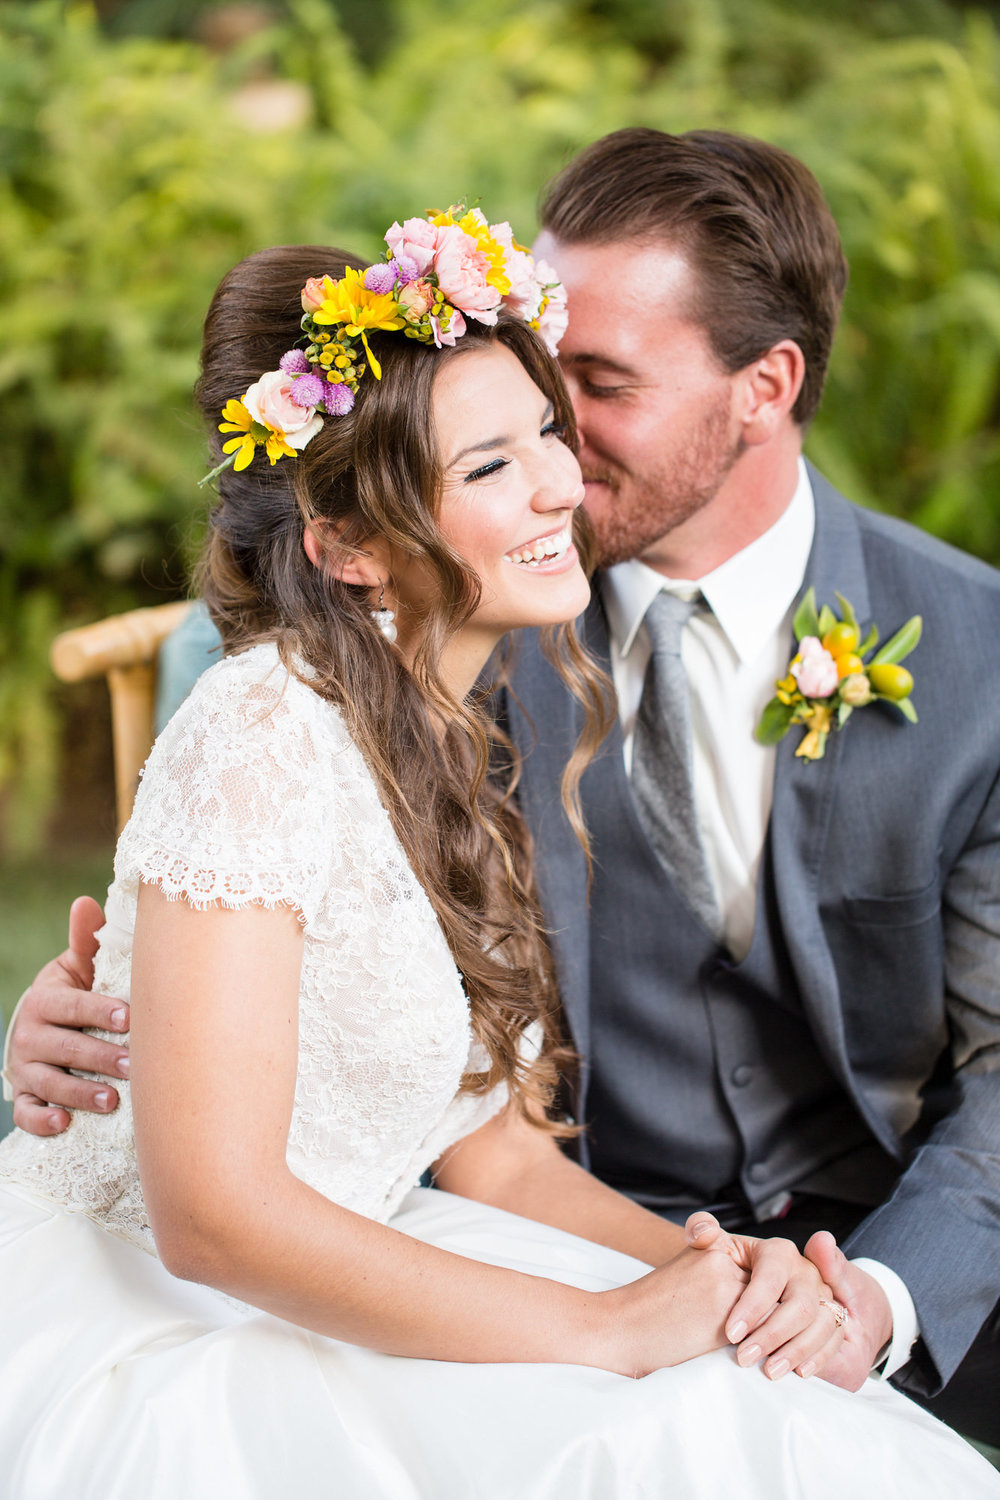 groom kissing bride on cheek bride wearing bright flower crown and short sleeve wedding dress kim baker beauty san jose california makeup artist wedding styled photoshoot at the holly farm in carmel